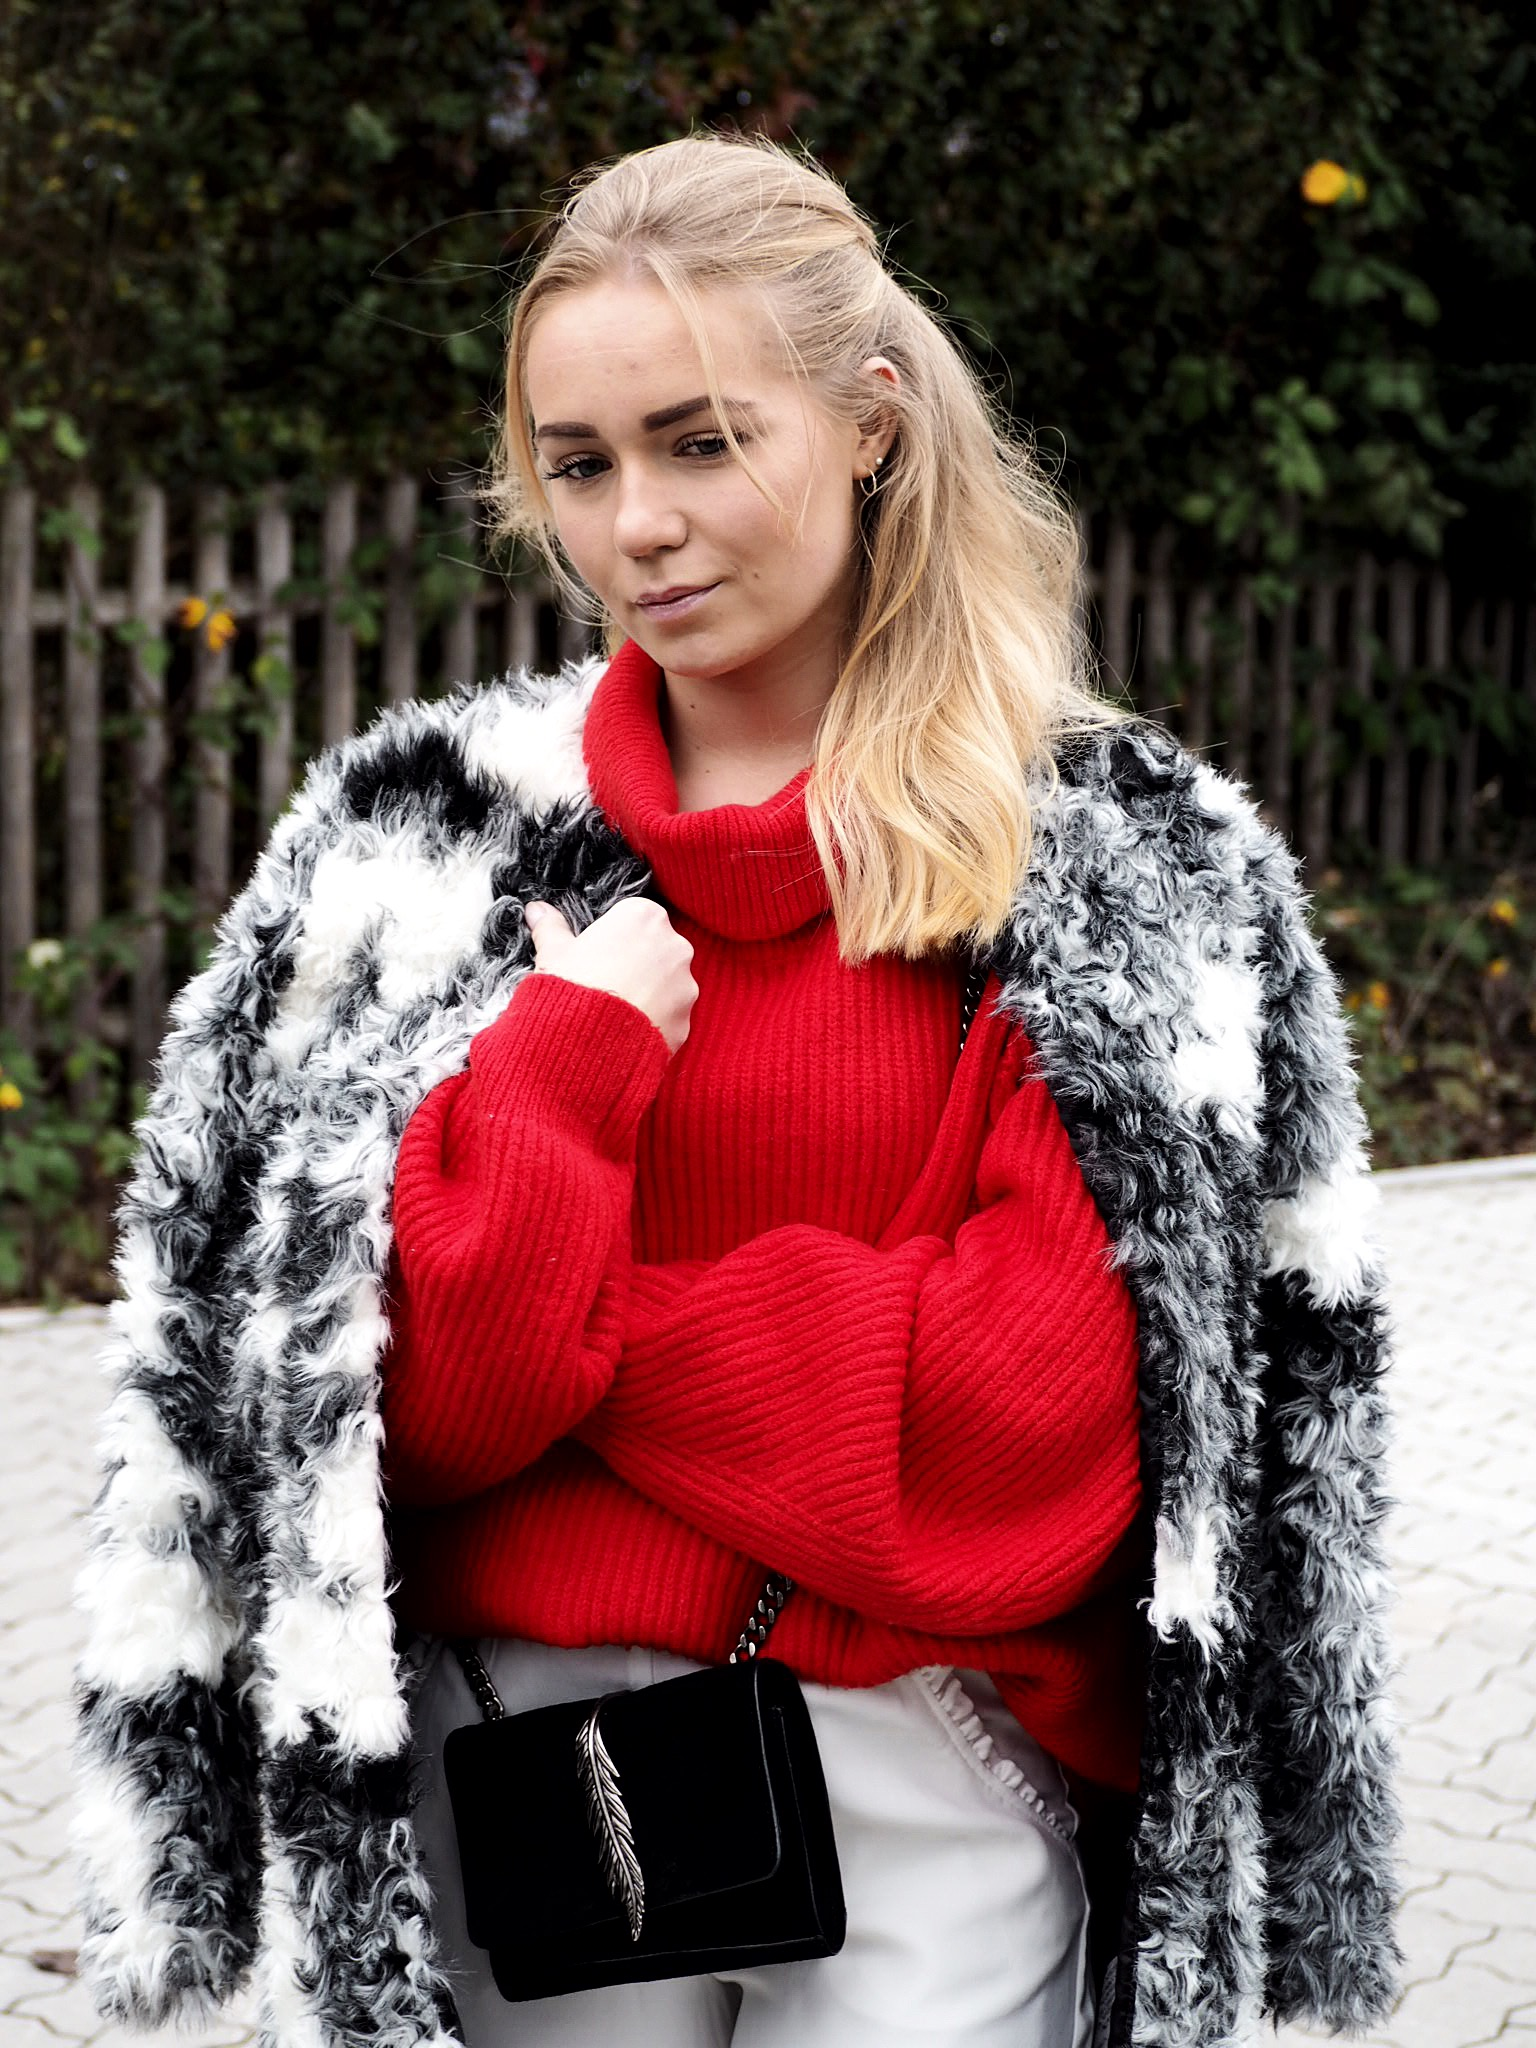 Outfit: Red jumper and white culottes